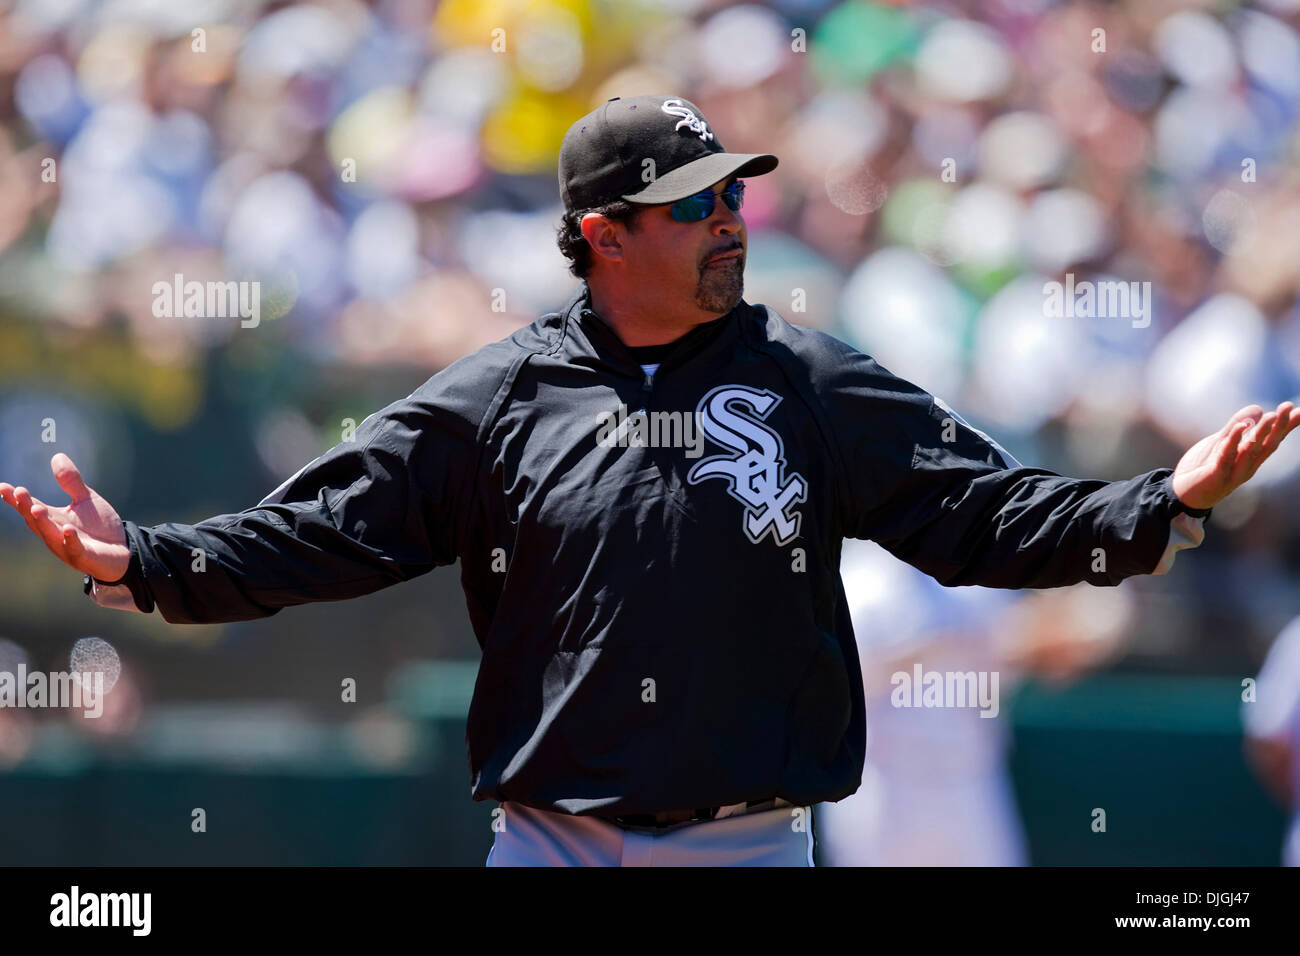 July 24, 2010 - Oakland, CA, United States of America - July 24, 2010: White Sox Manager Ozzie Guillen  complains to the umpire during the game between the Oakland A's and the Chicago White Sox at the Oakland-Alameda County Coliseum in Oakland CA. The A's defeated the White Sox 10-2. Mandatory Credit: Damon Tarver/ Southcreek Global. (Credit Image: © Southcreek Global/ZUMApress.com - Stock Image